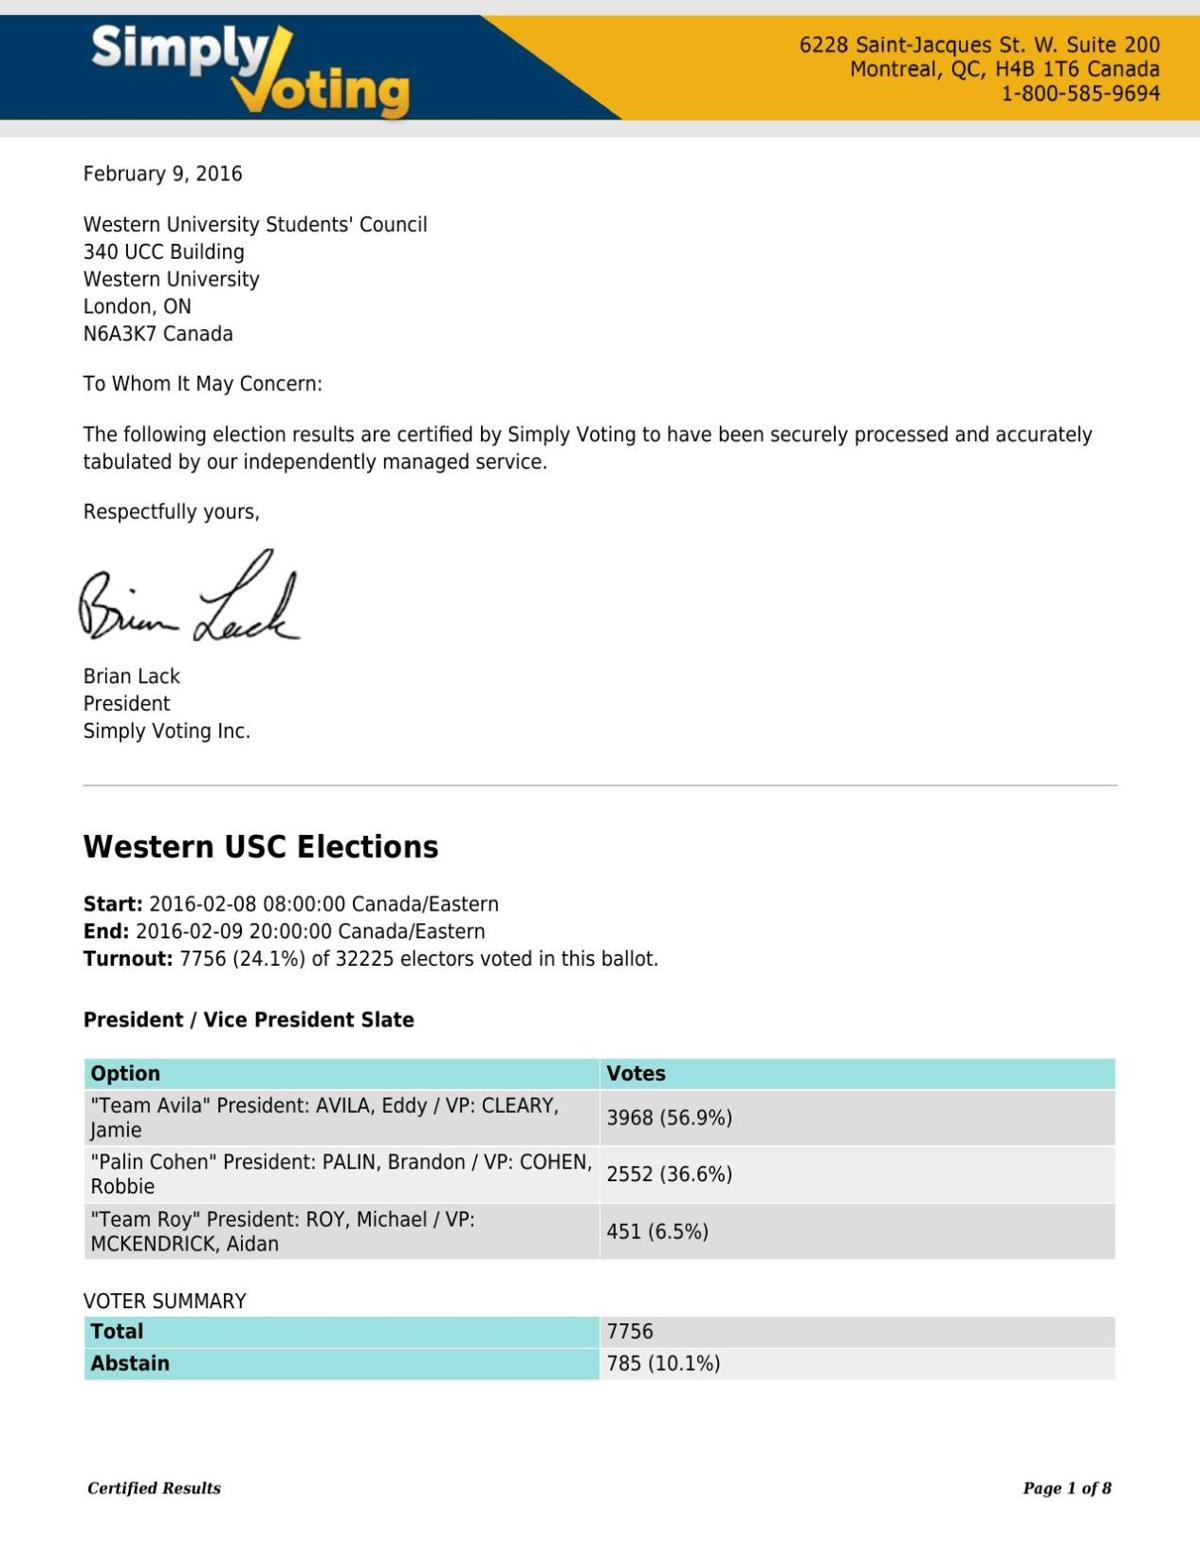 USC election results 2016